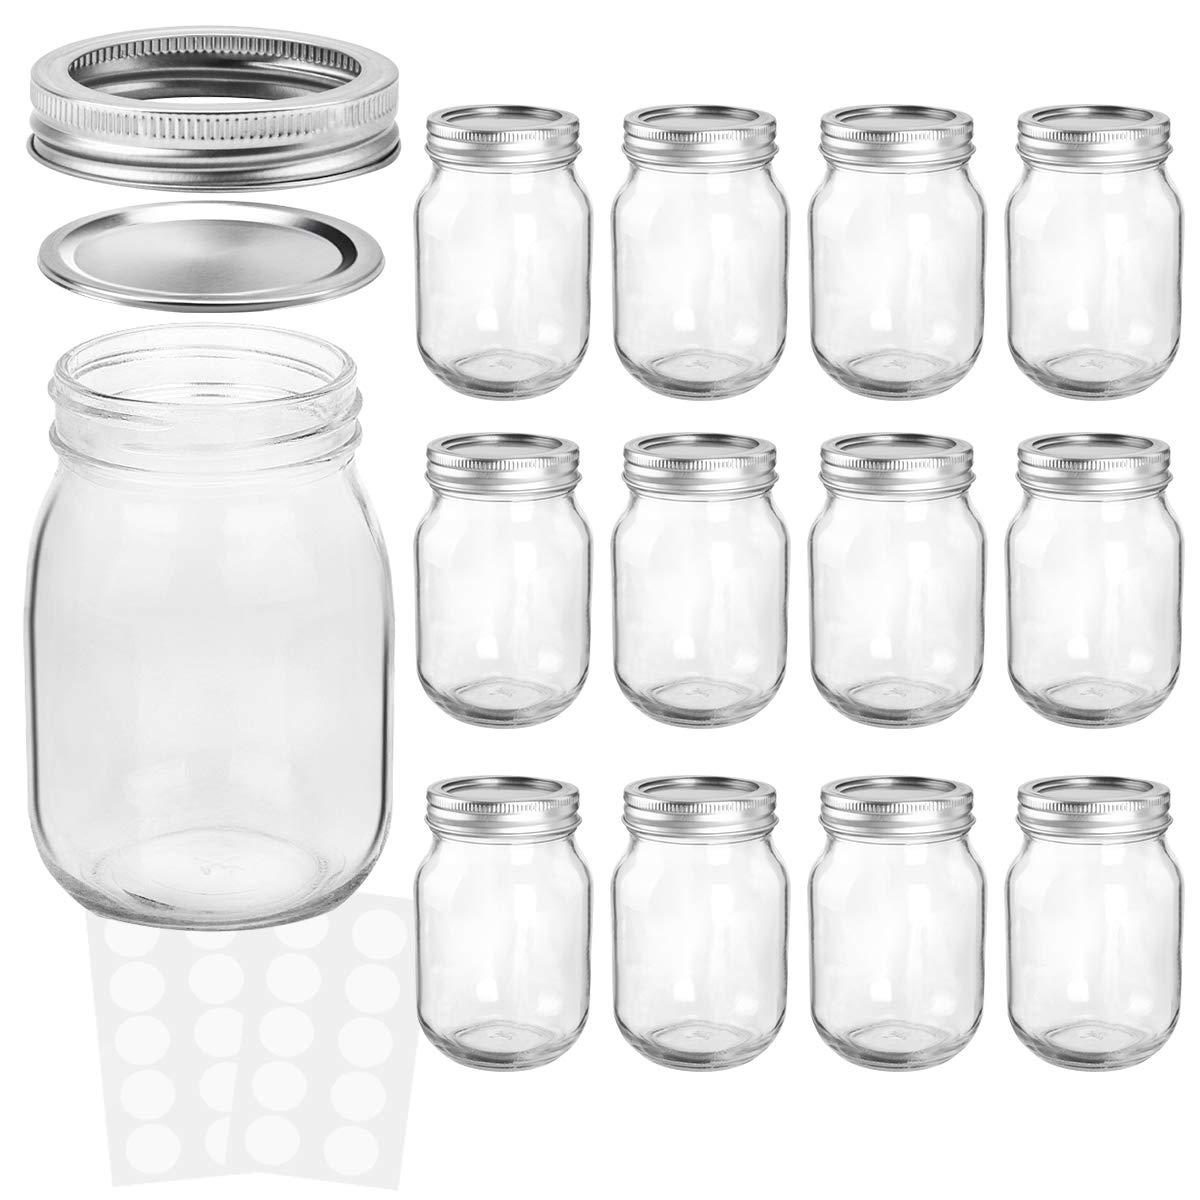 KAMOTA Mason Jars 12OZ With Regular Lids and Bands, Ideal for Jam, Honey, Wedding Favors, Shower Favors, Baby Foods, DIY Magnetic Spice Jars, 12 PACK, 20 Whiteboard Labels Included by KAMOTA